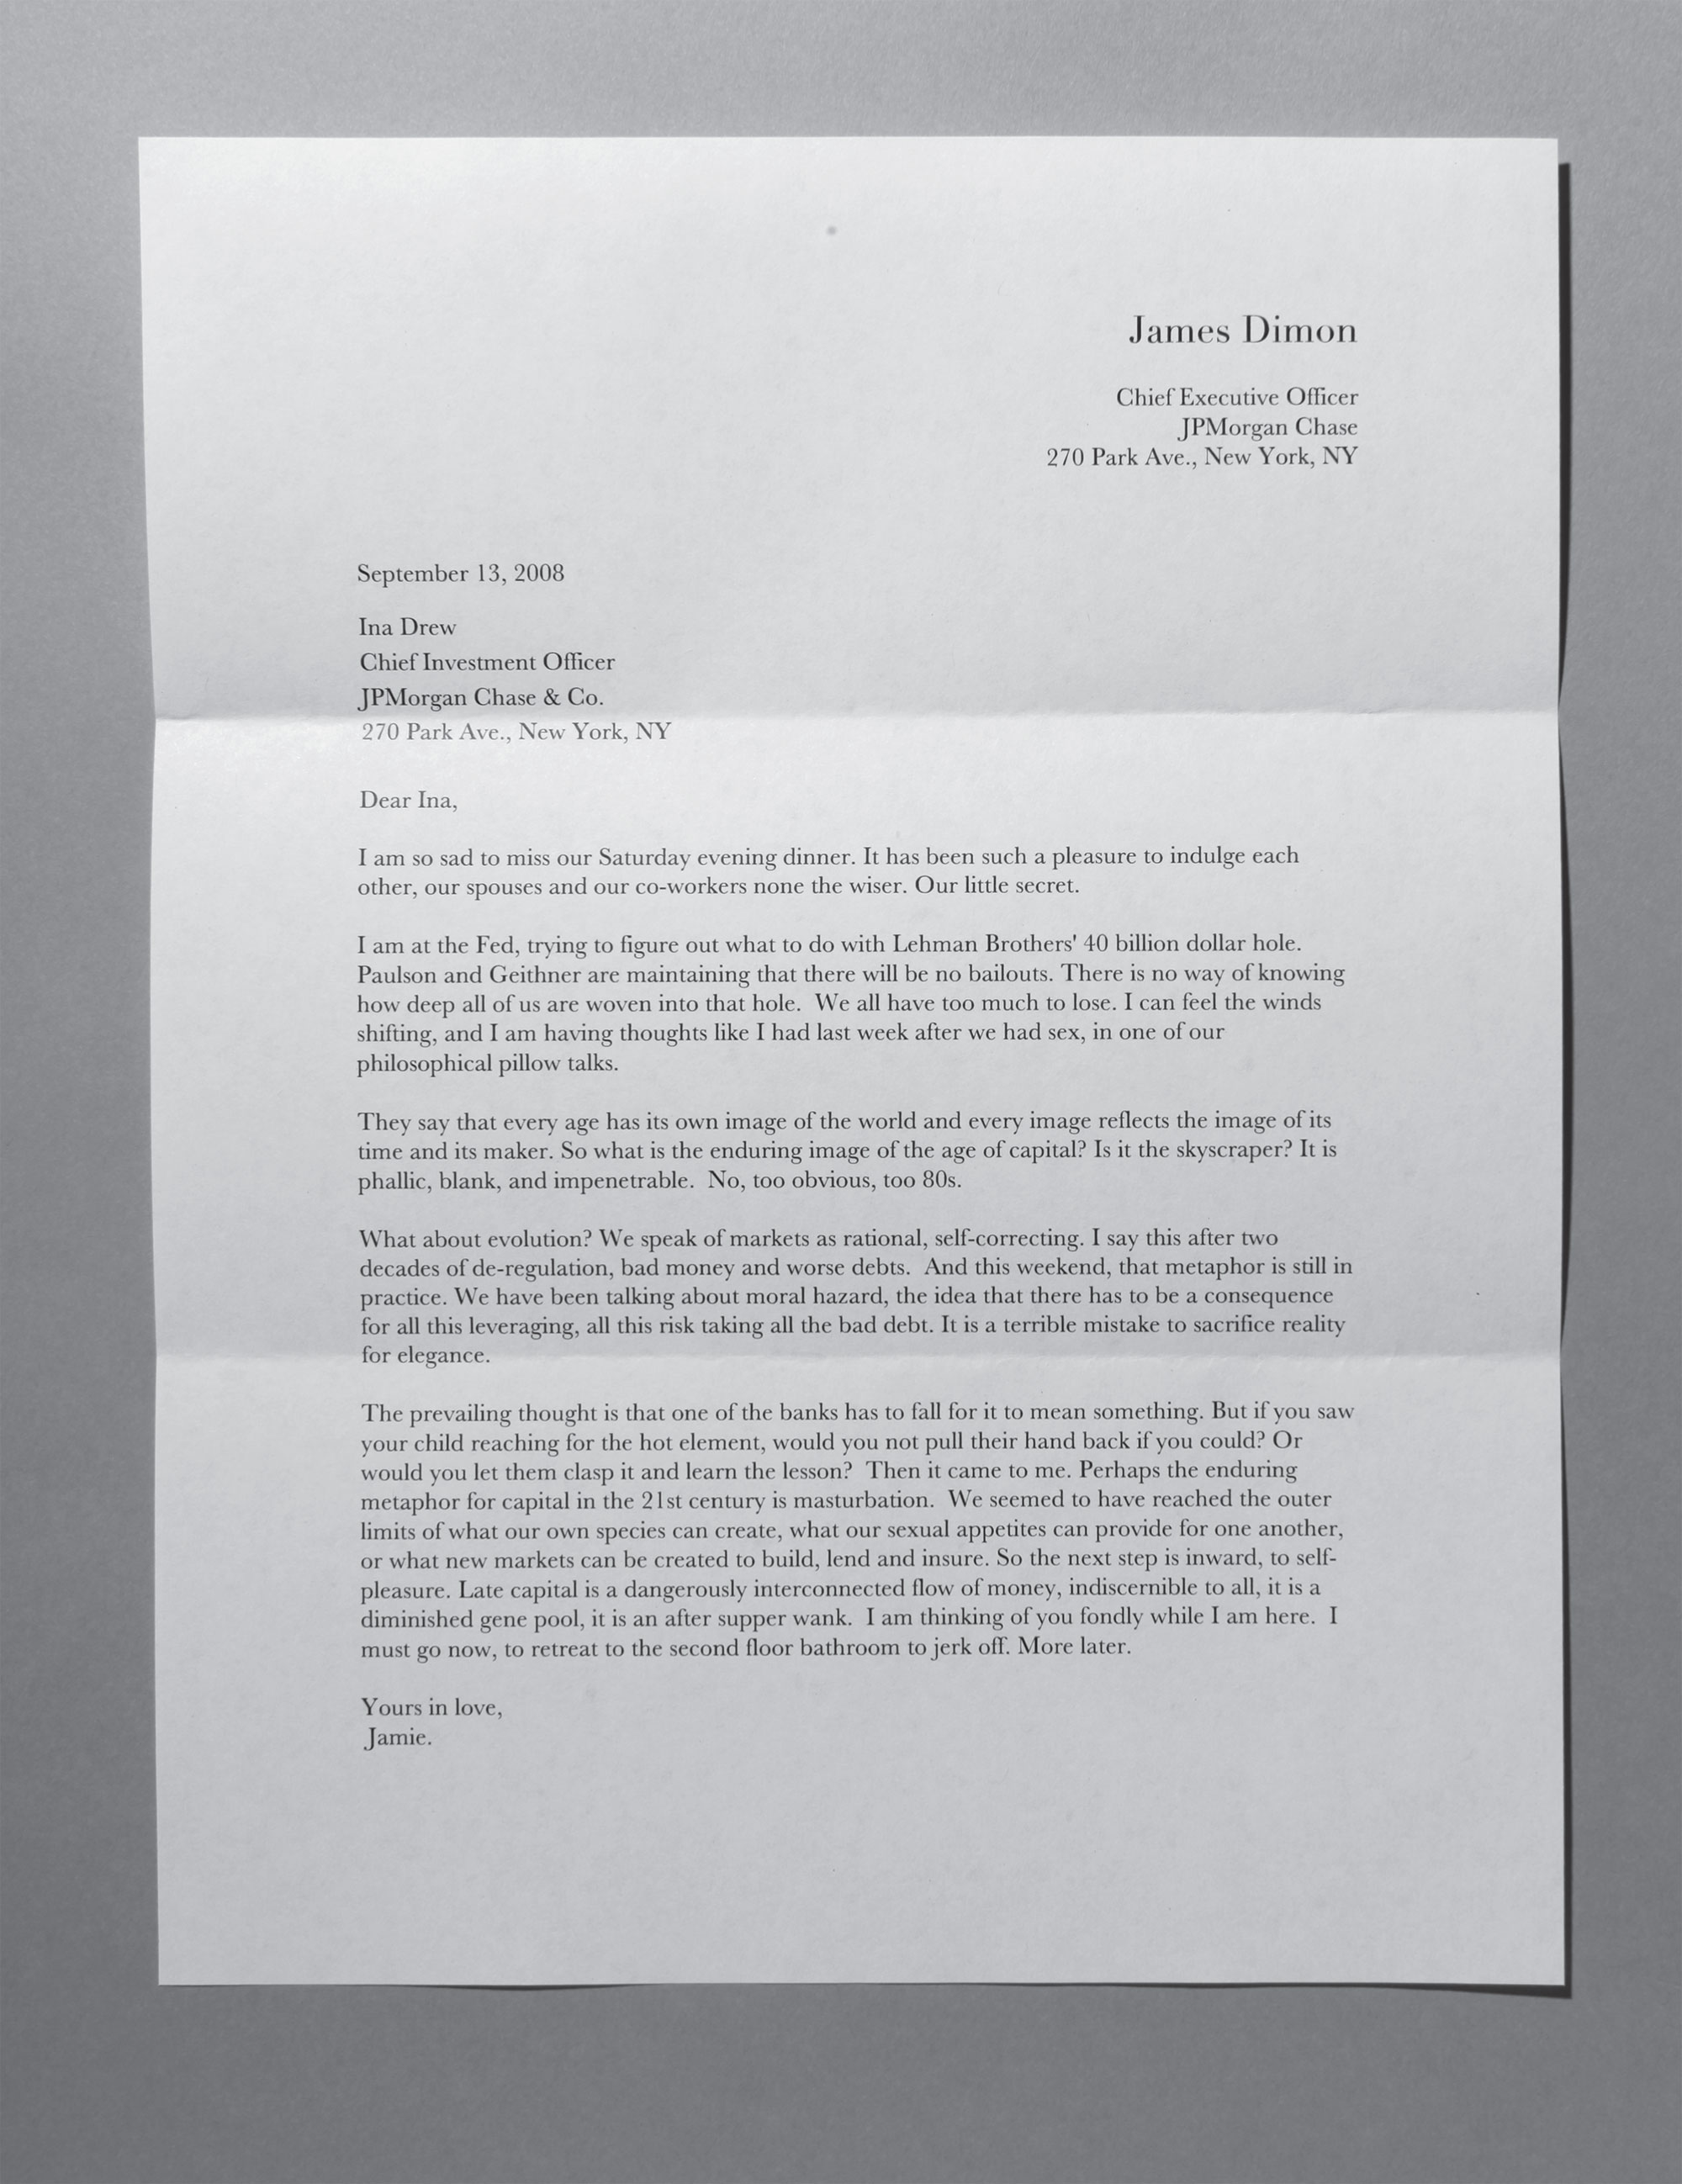 Letter to Ina Drew